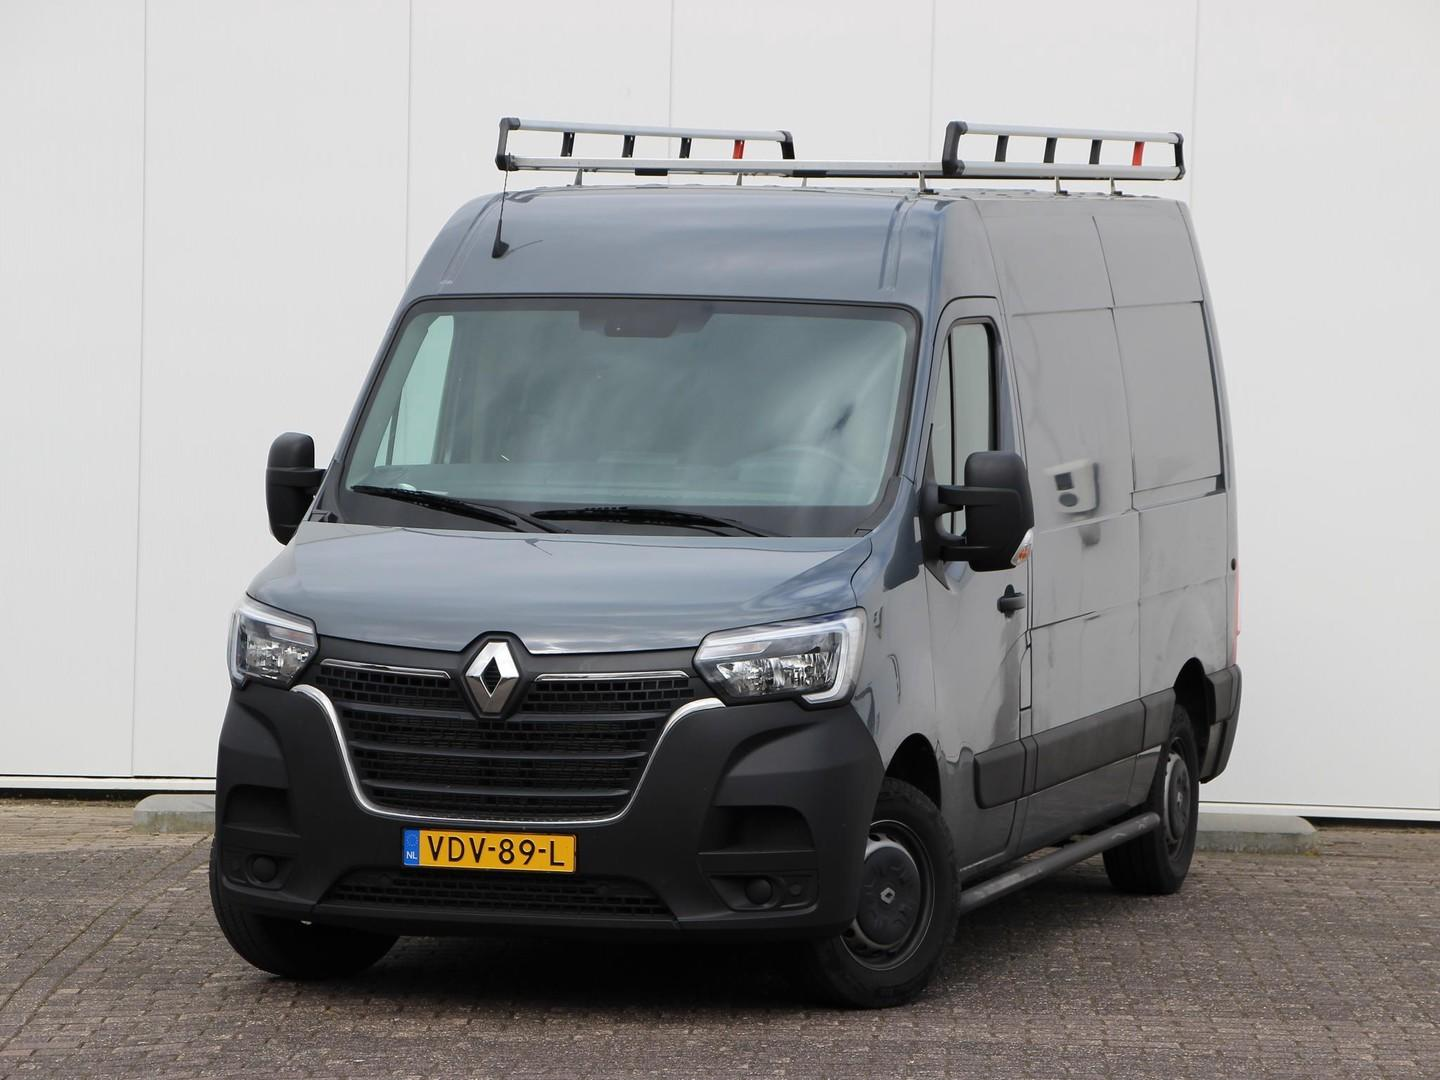 Renault Master T35 2.3 dci 180 l2h2 fwd energy twinturbo